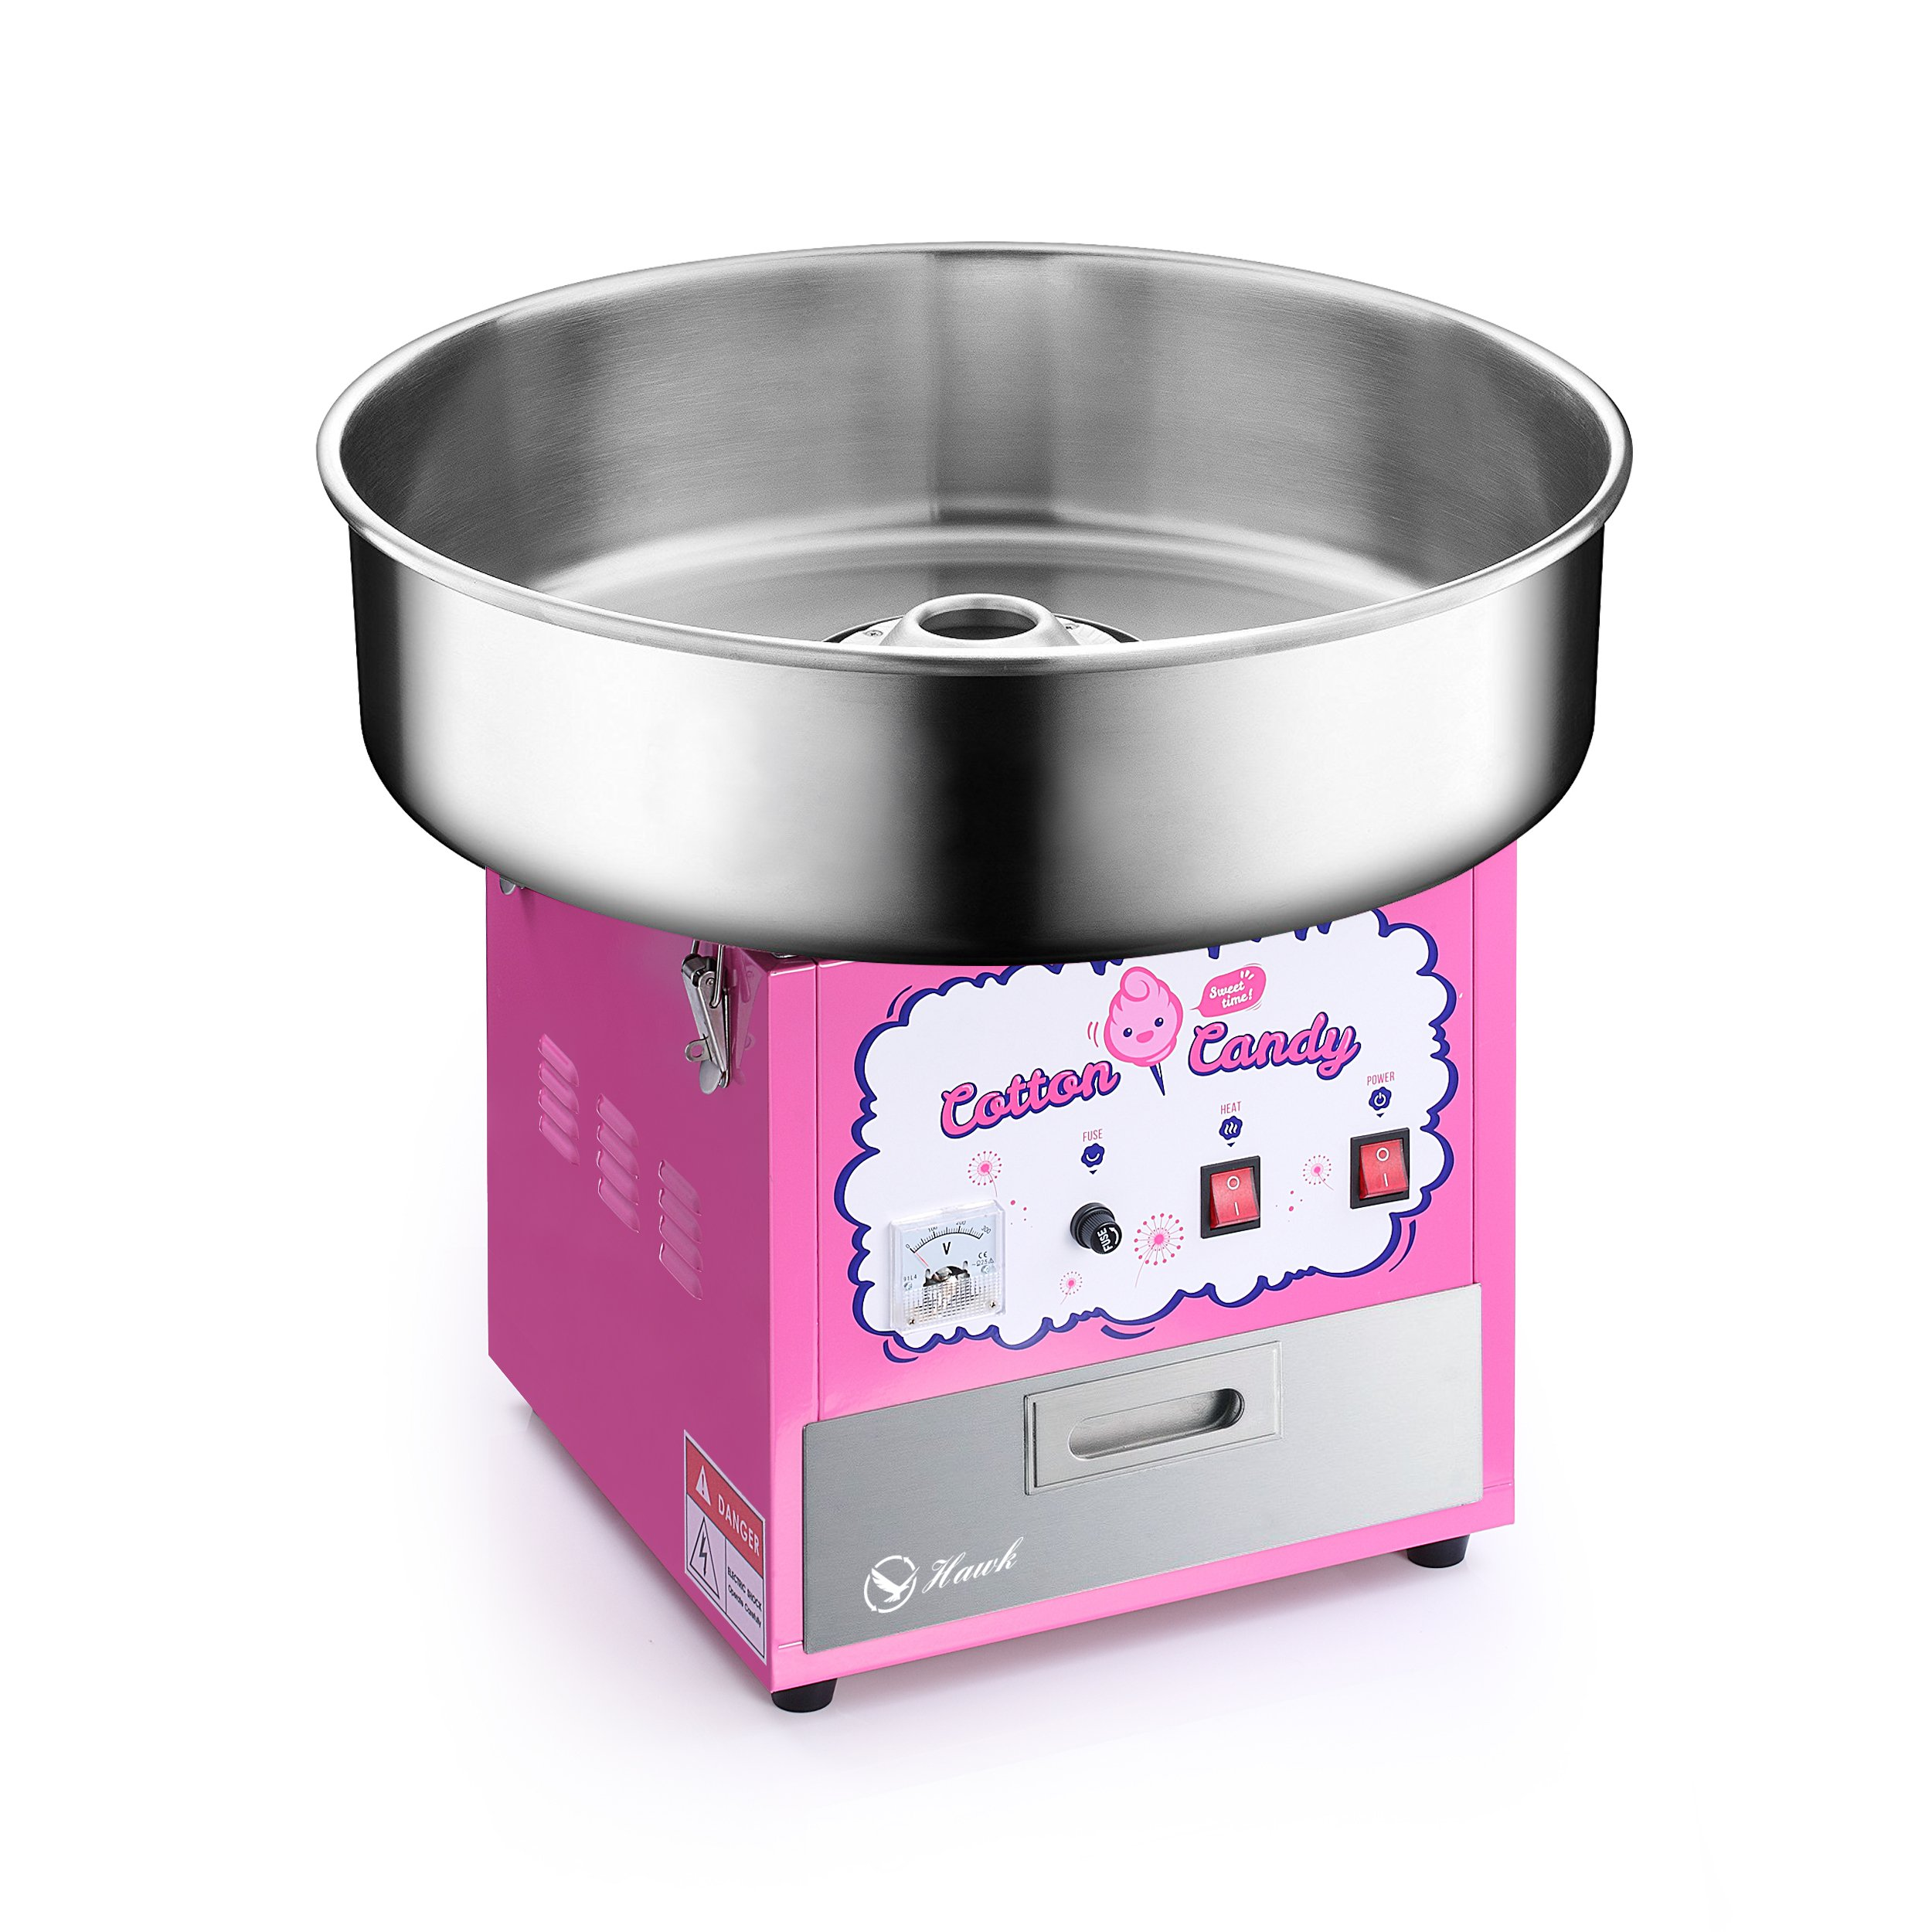 Commercial Quality Cotton Candy Machine / Candy Floss Maker Pink